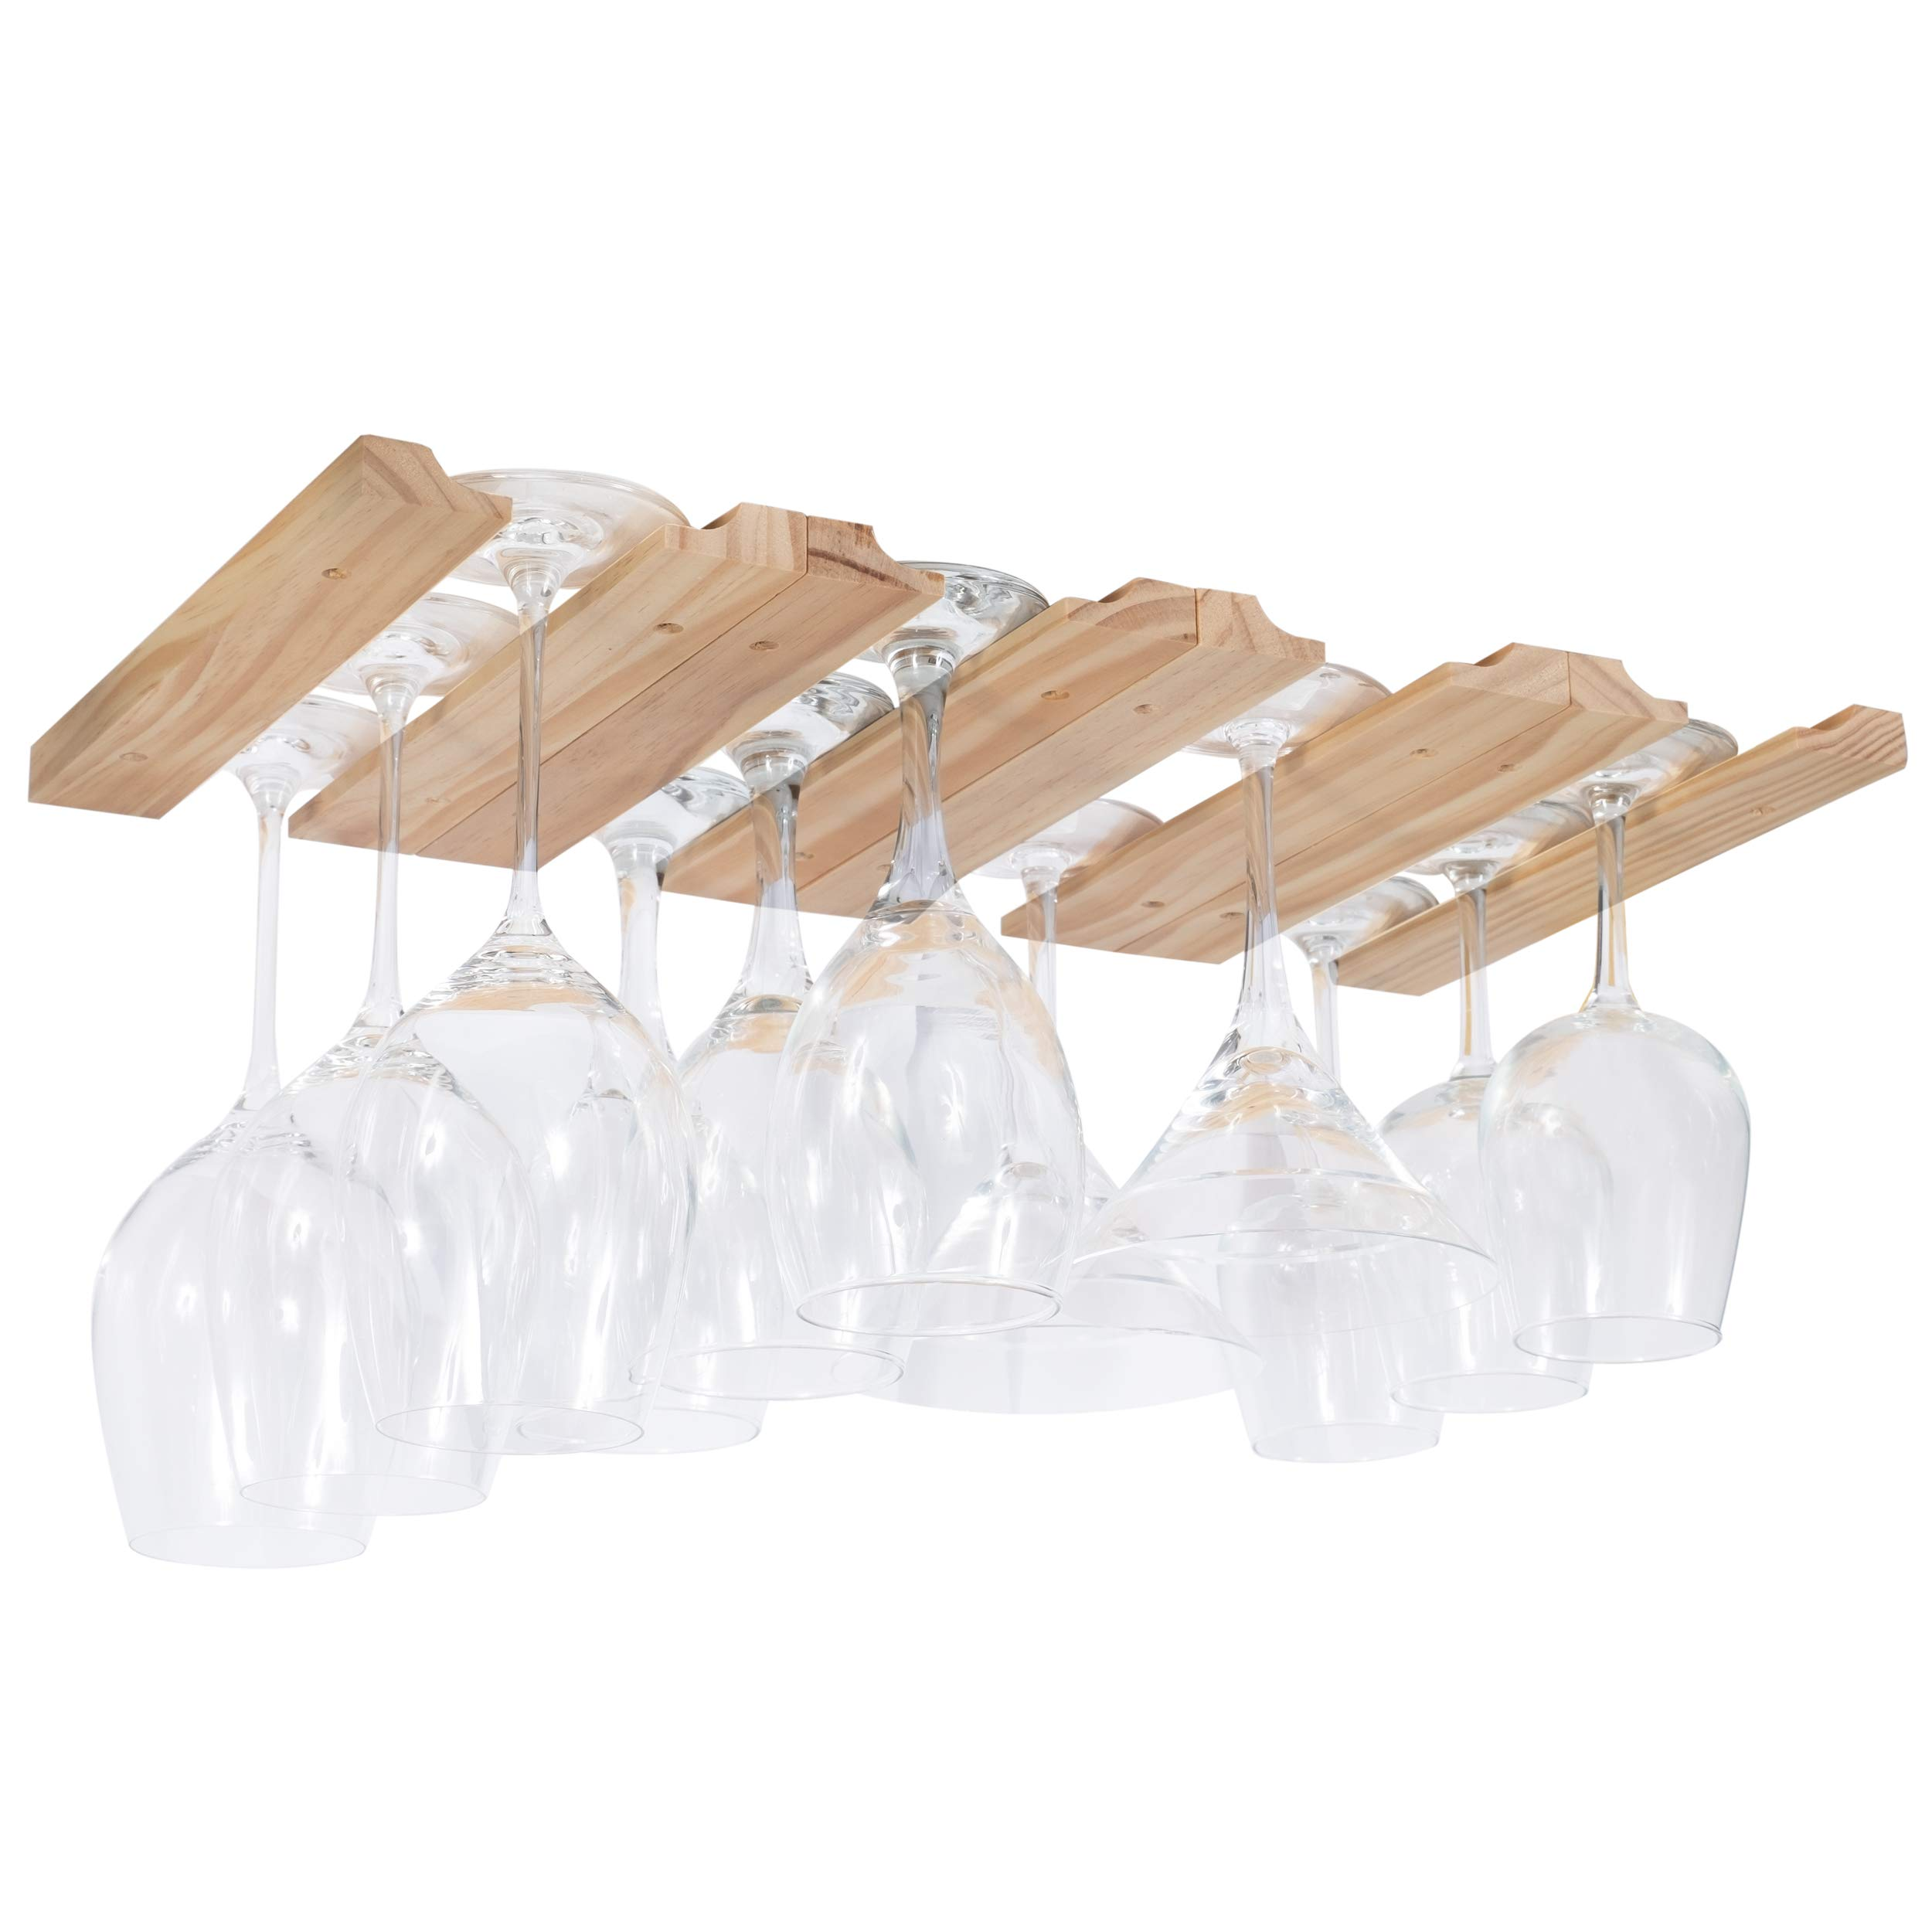 Rustic State Under Cabinet Wooden Hanging Wine Glass Holder by ArtifactDesign Adjustable 4-Sectional Stemware Storage Rack Natural